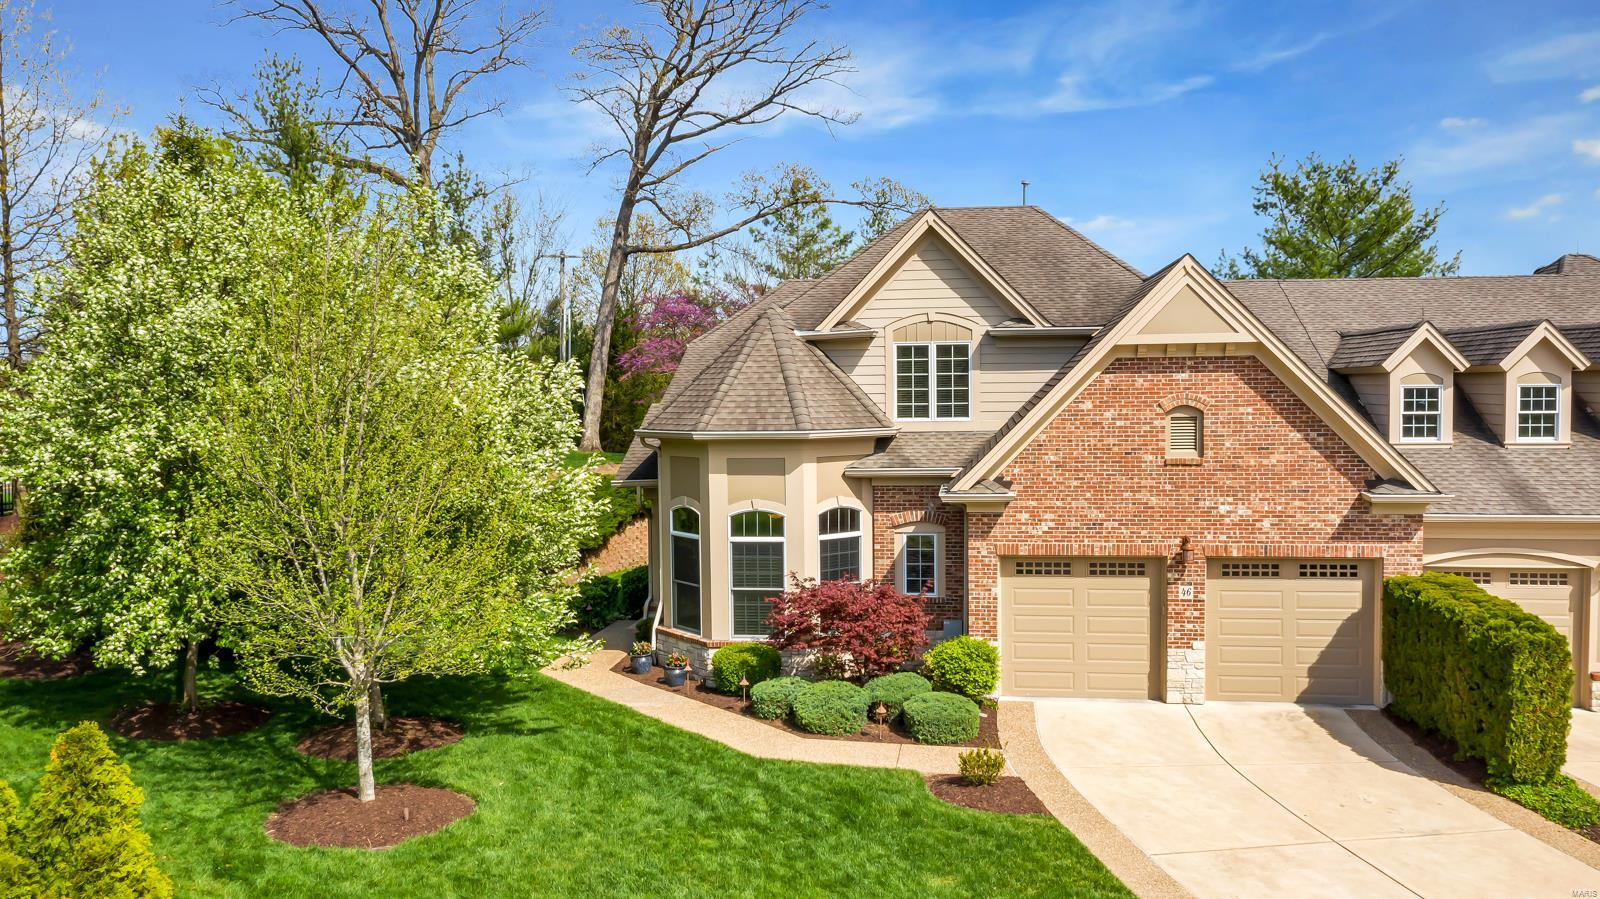 46 Old Belle Monte , Chesterfield, MO 63017